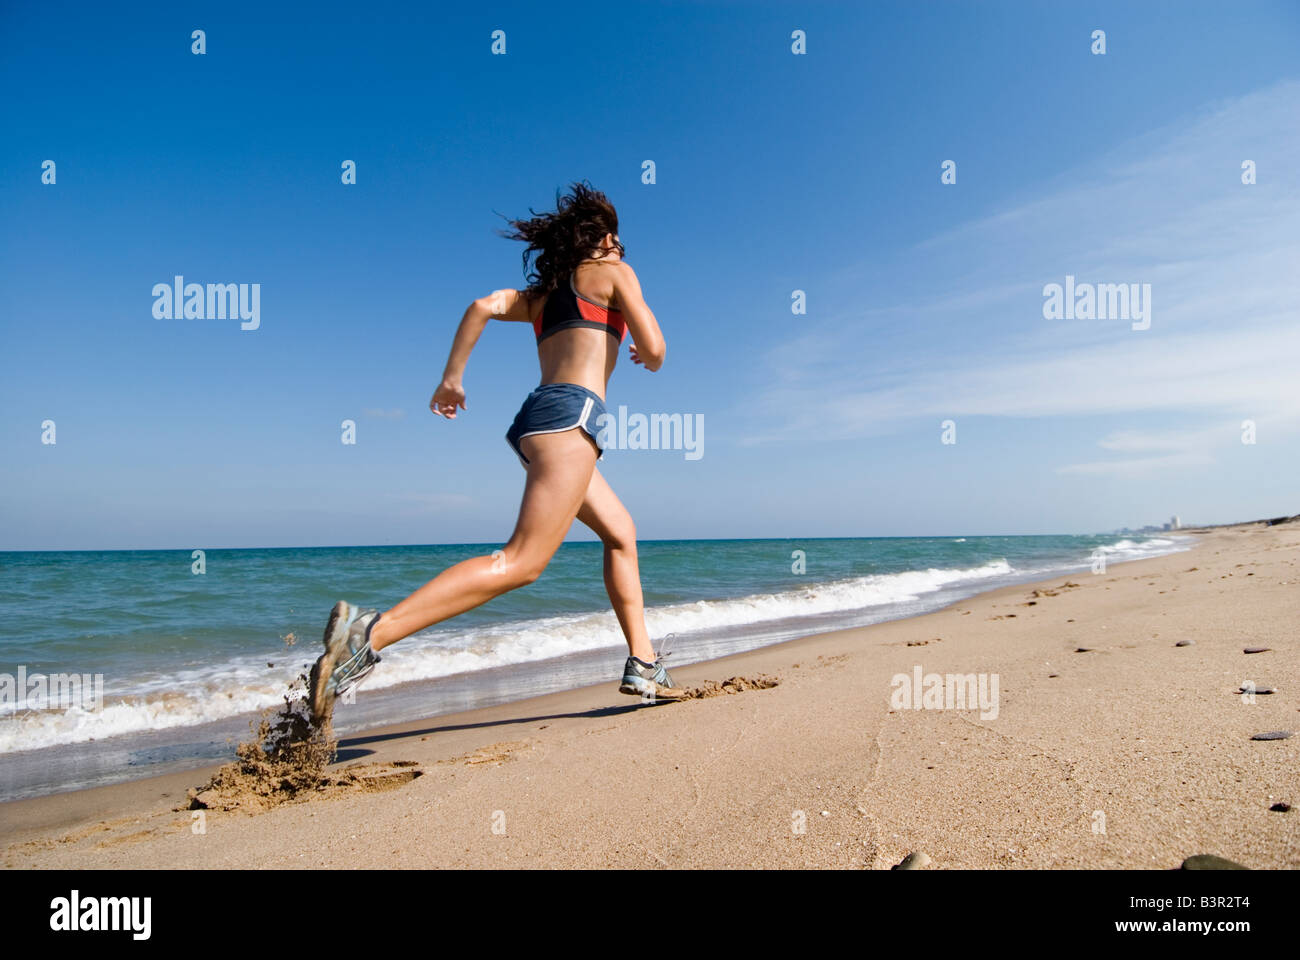 Model Released fit young woman running along shoreline of an empty sandy beach - Stock Image